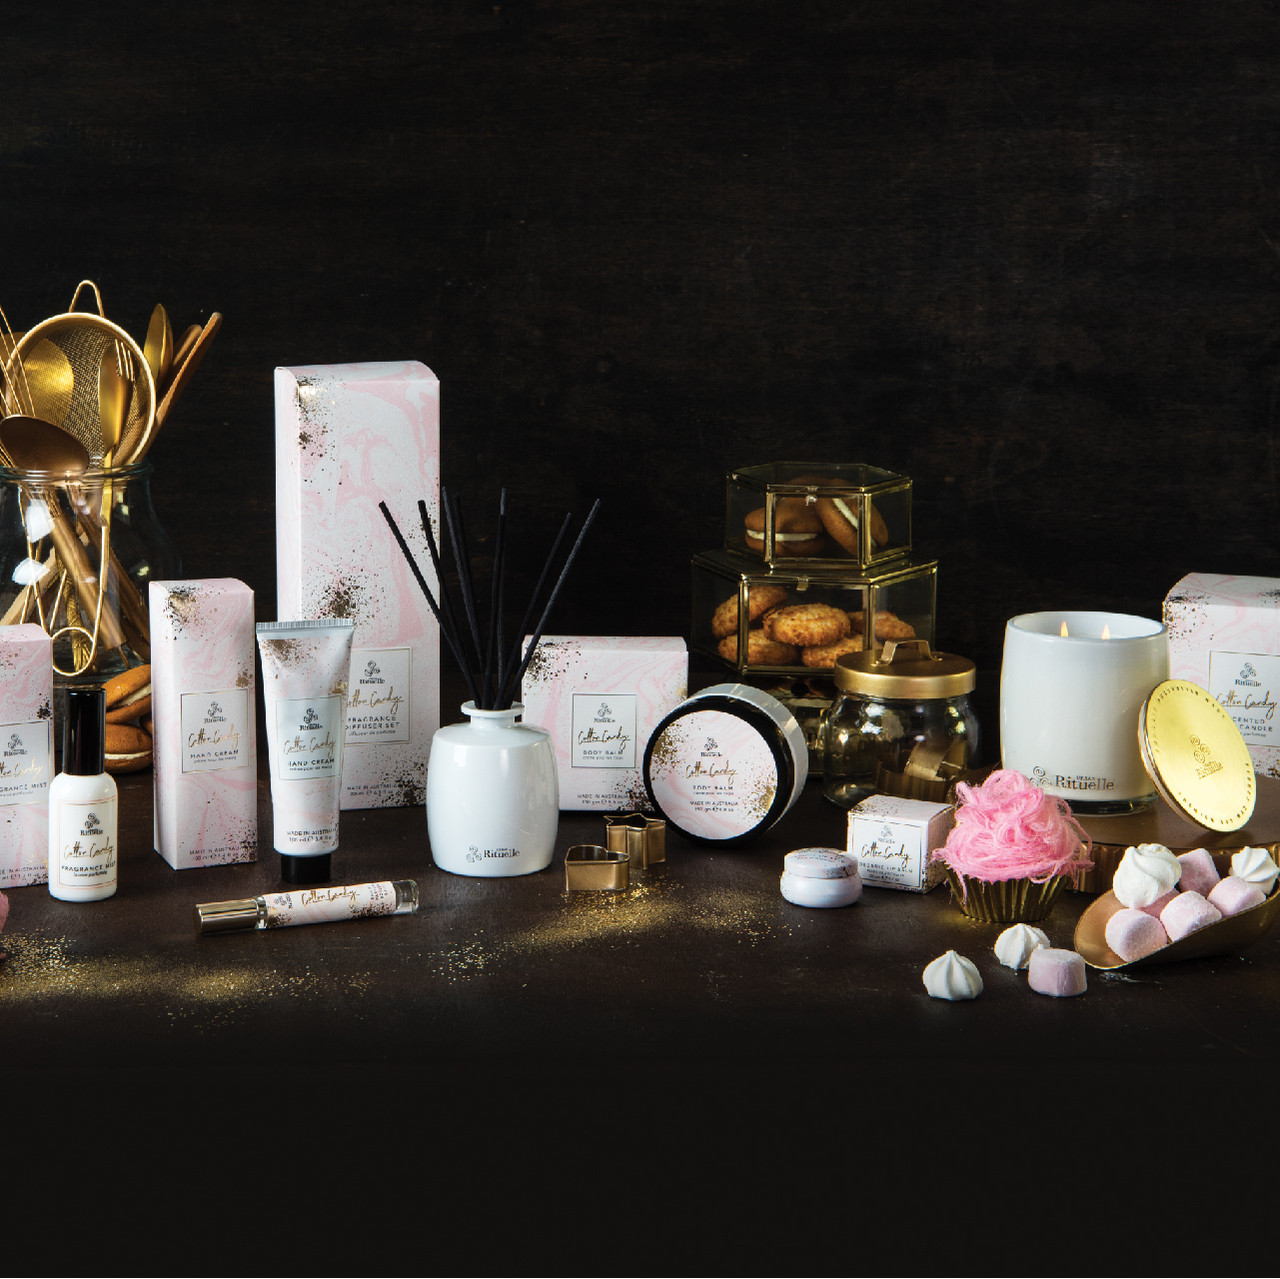 Sweet Treats - Cotton Candy - Urban Rituelle